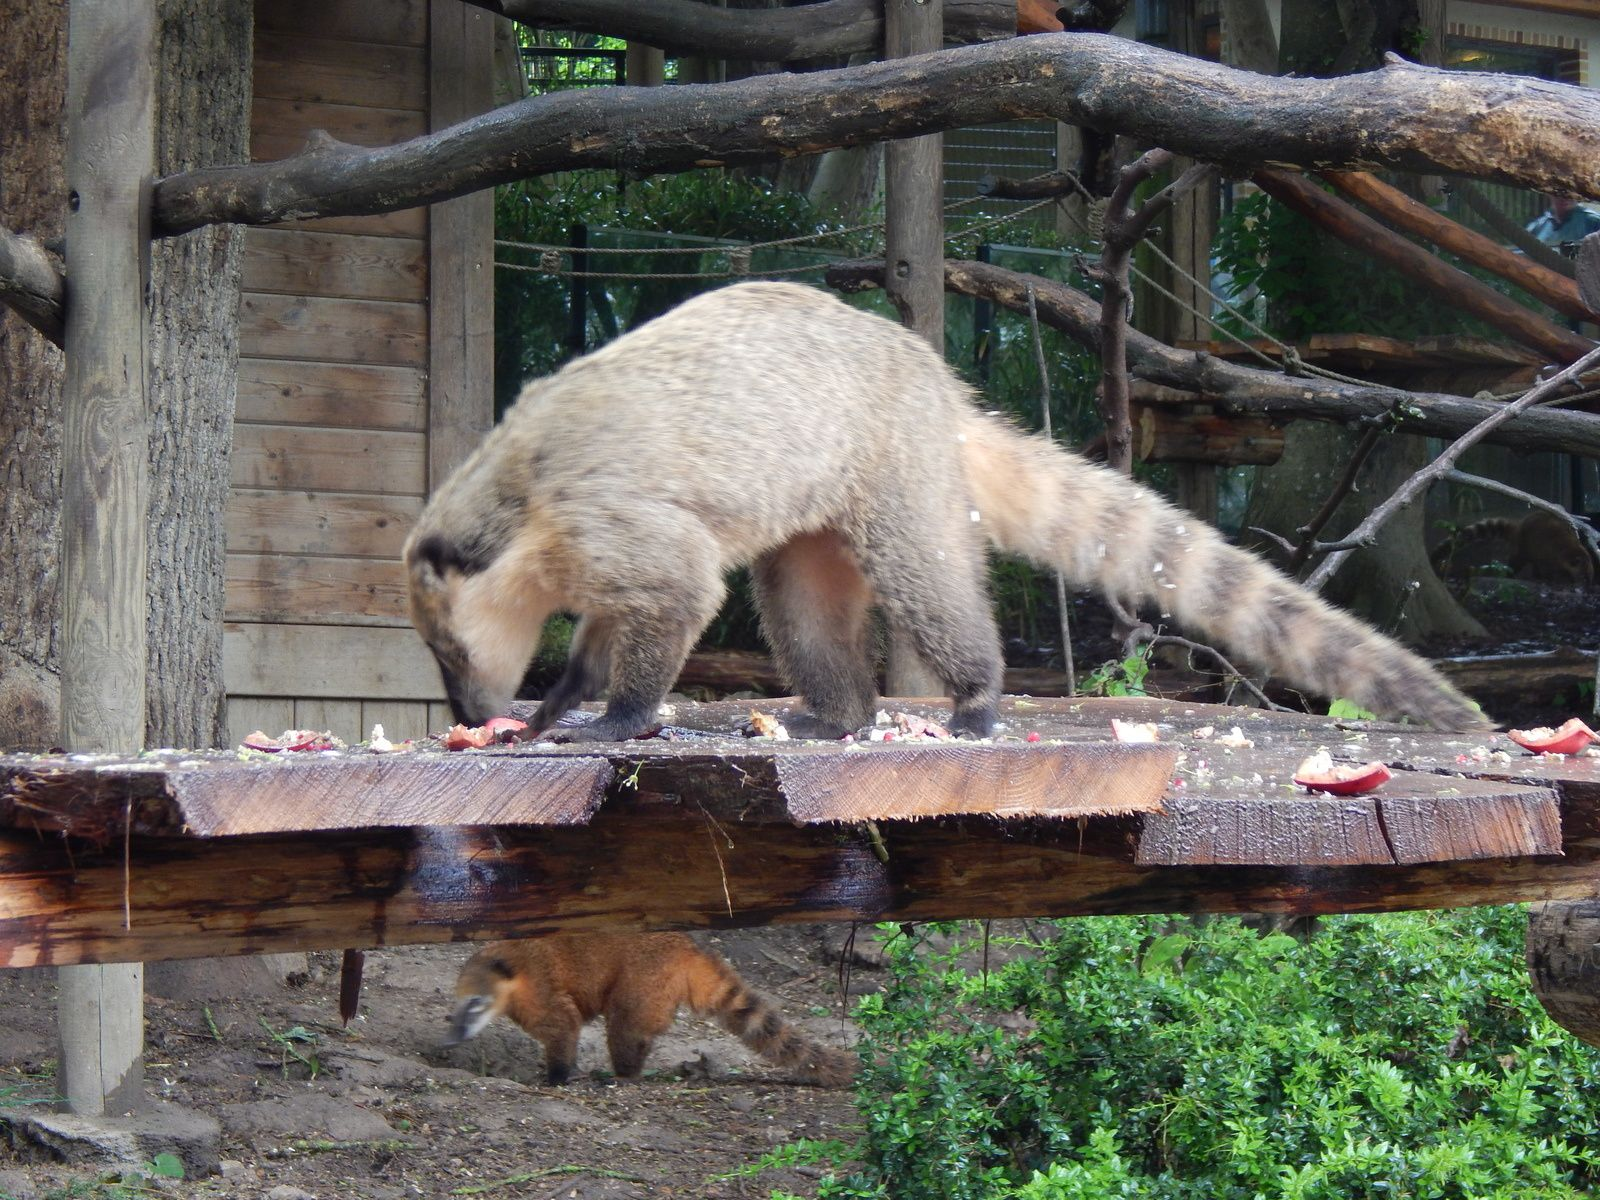 Coati roux ou à queue annelée